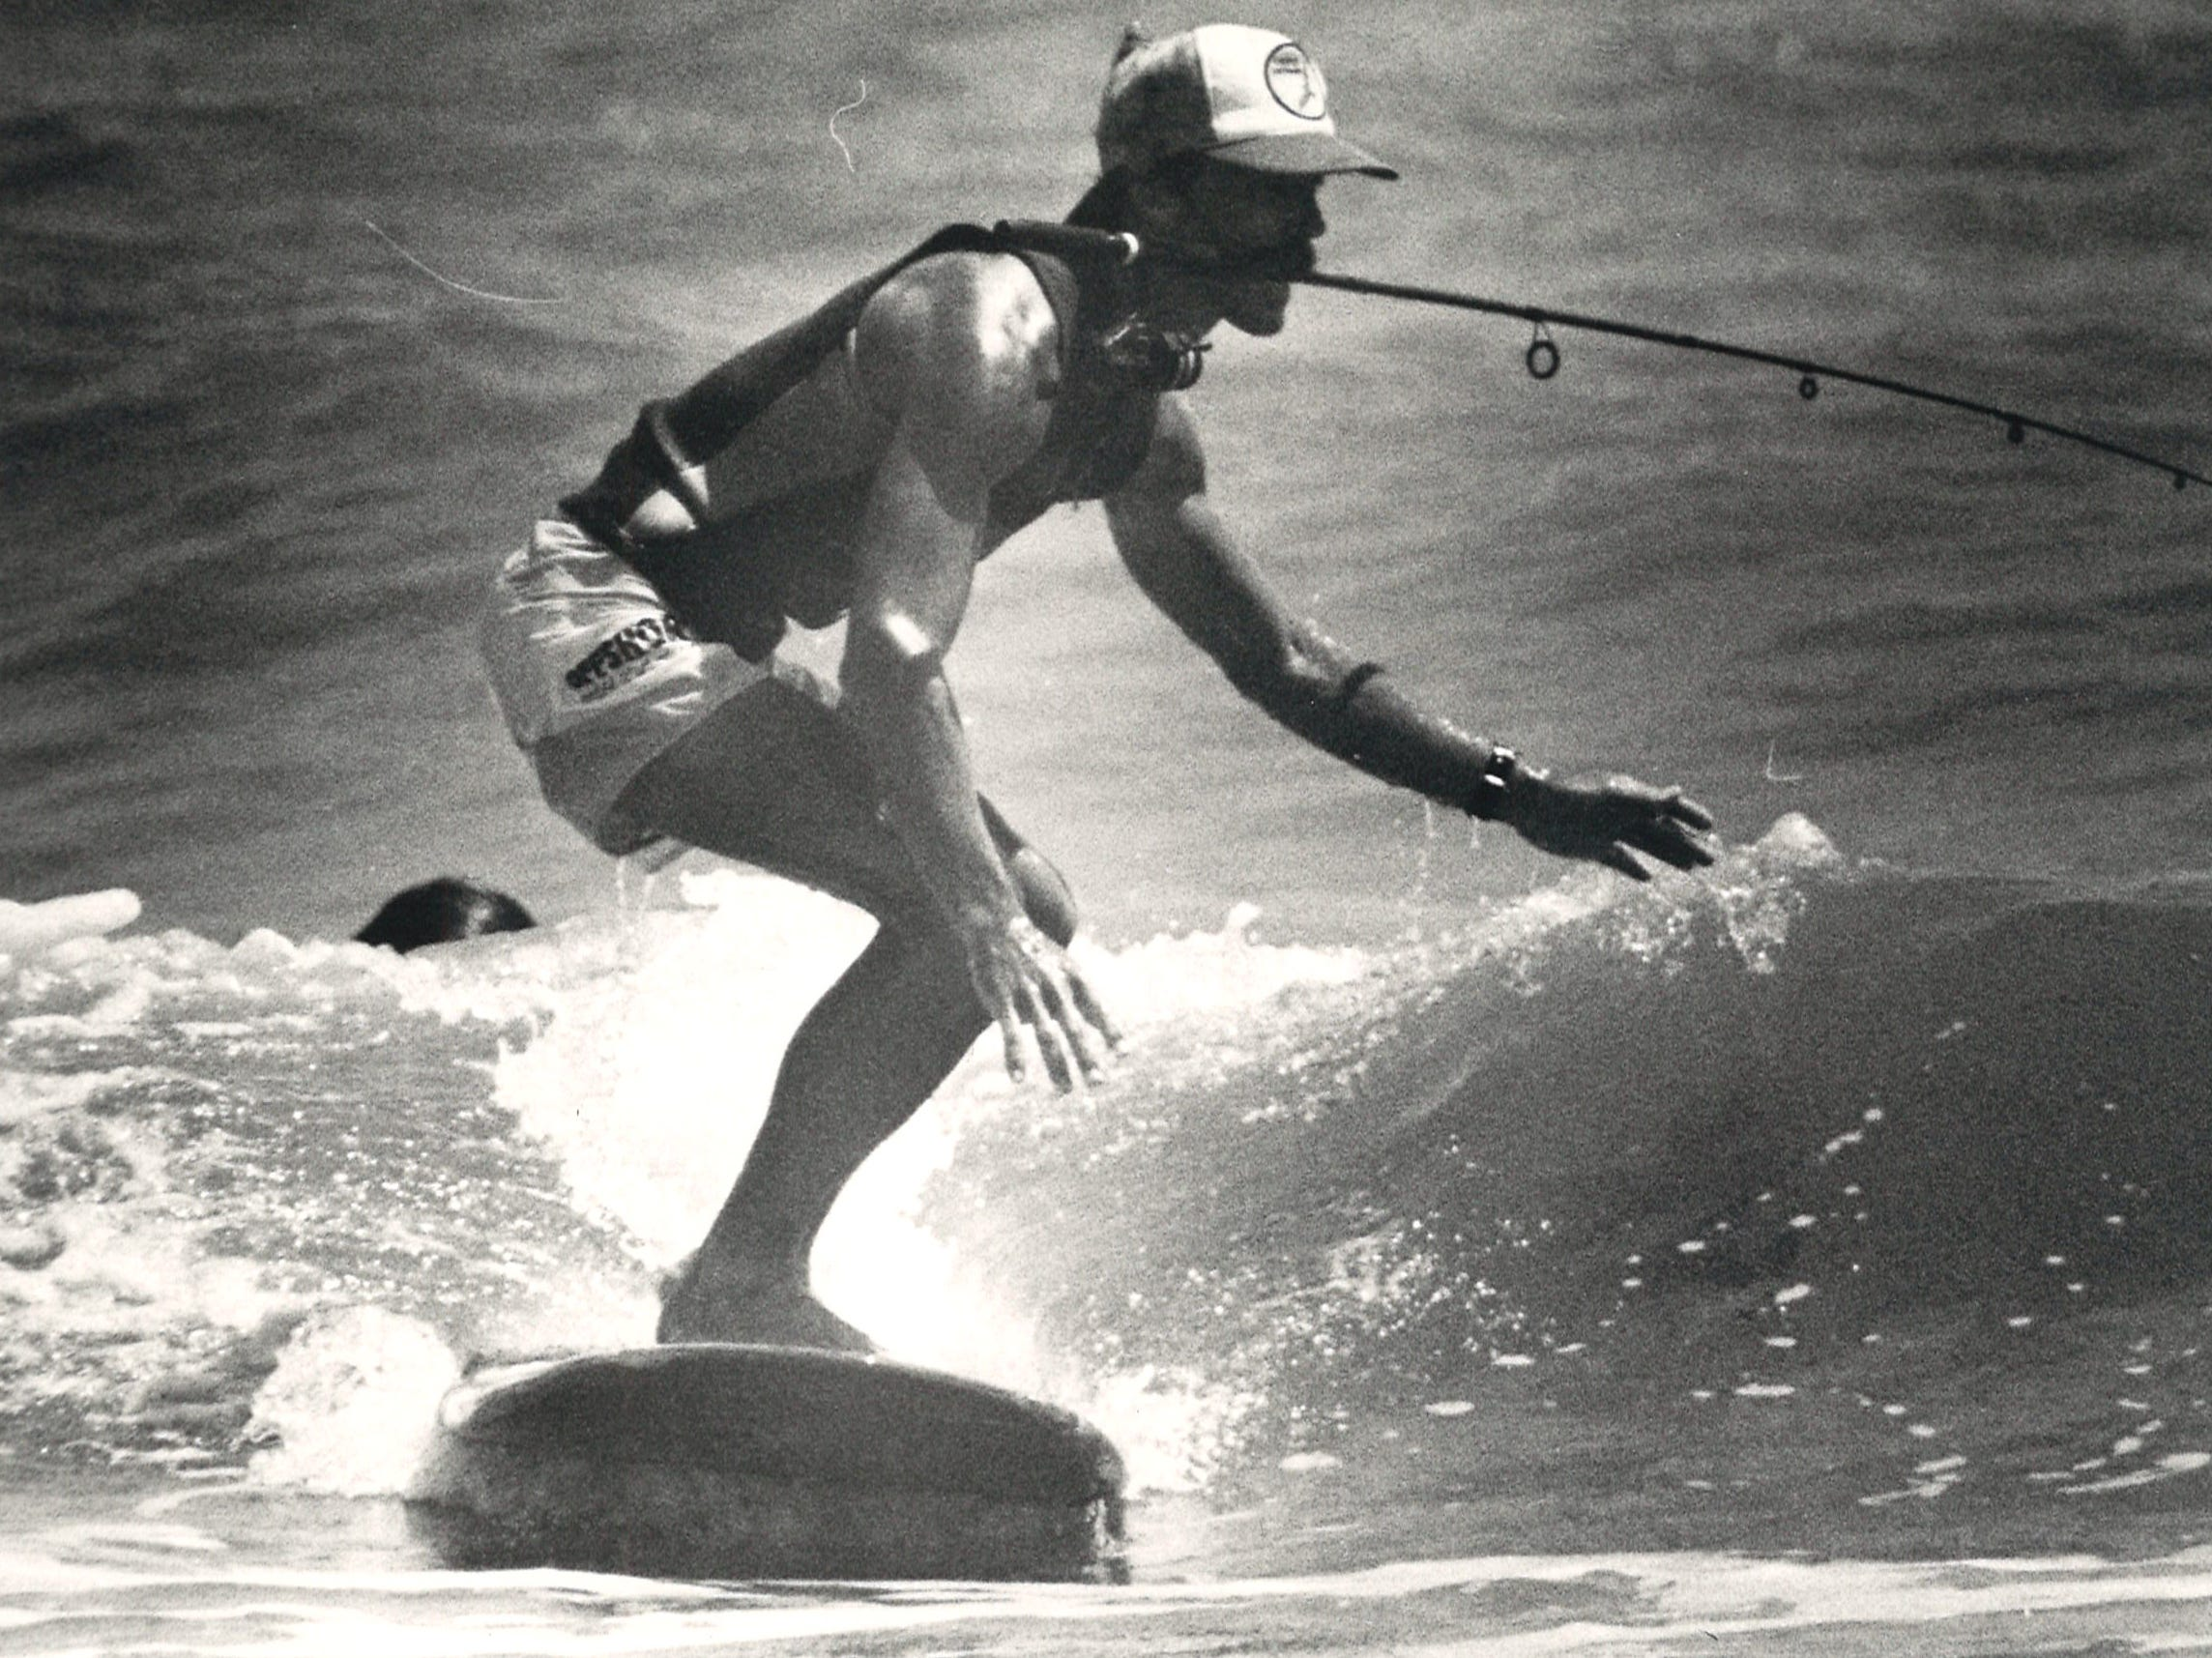 A surfer clutches a fishing rod in his mouth during the Off Shore/Raisins Texas Pro Am Surfing Classic at J.P. Luby Surf Park in Corpus Chrisit on March 29, 1986.